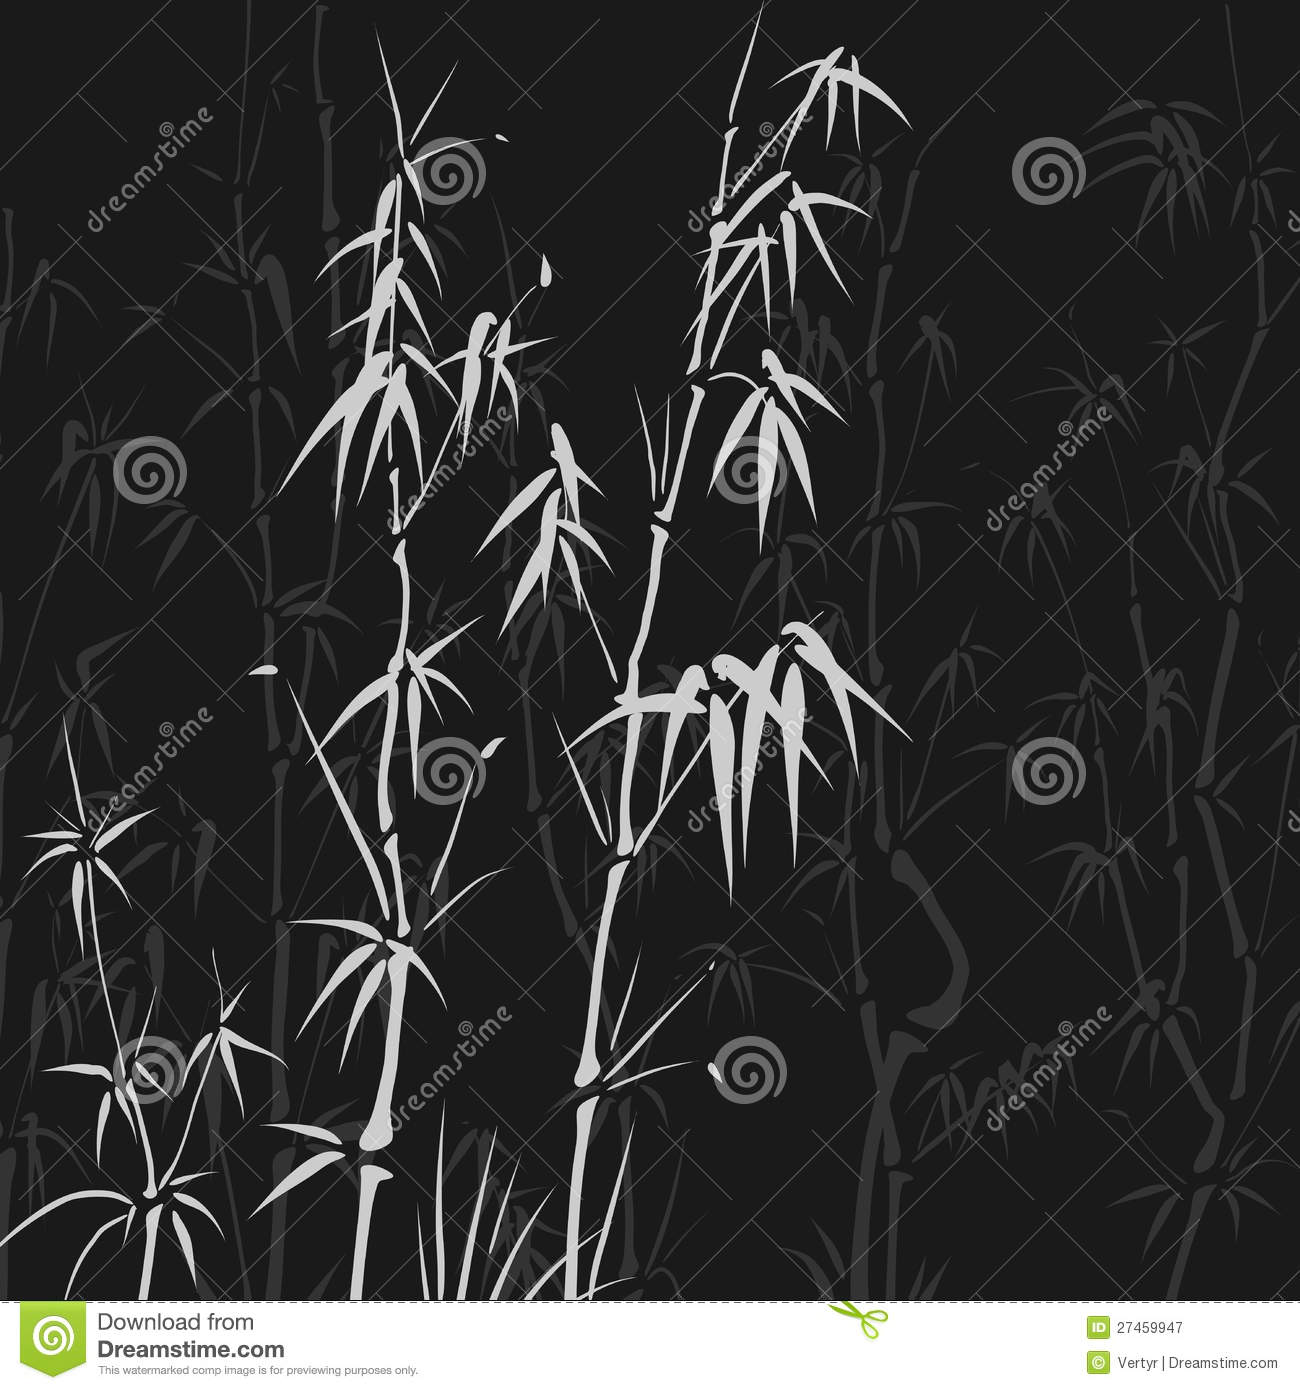 Background with many bamboo in asian style.